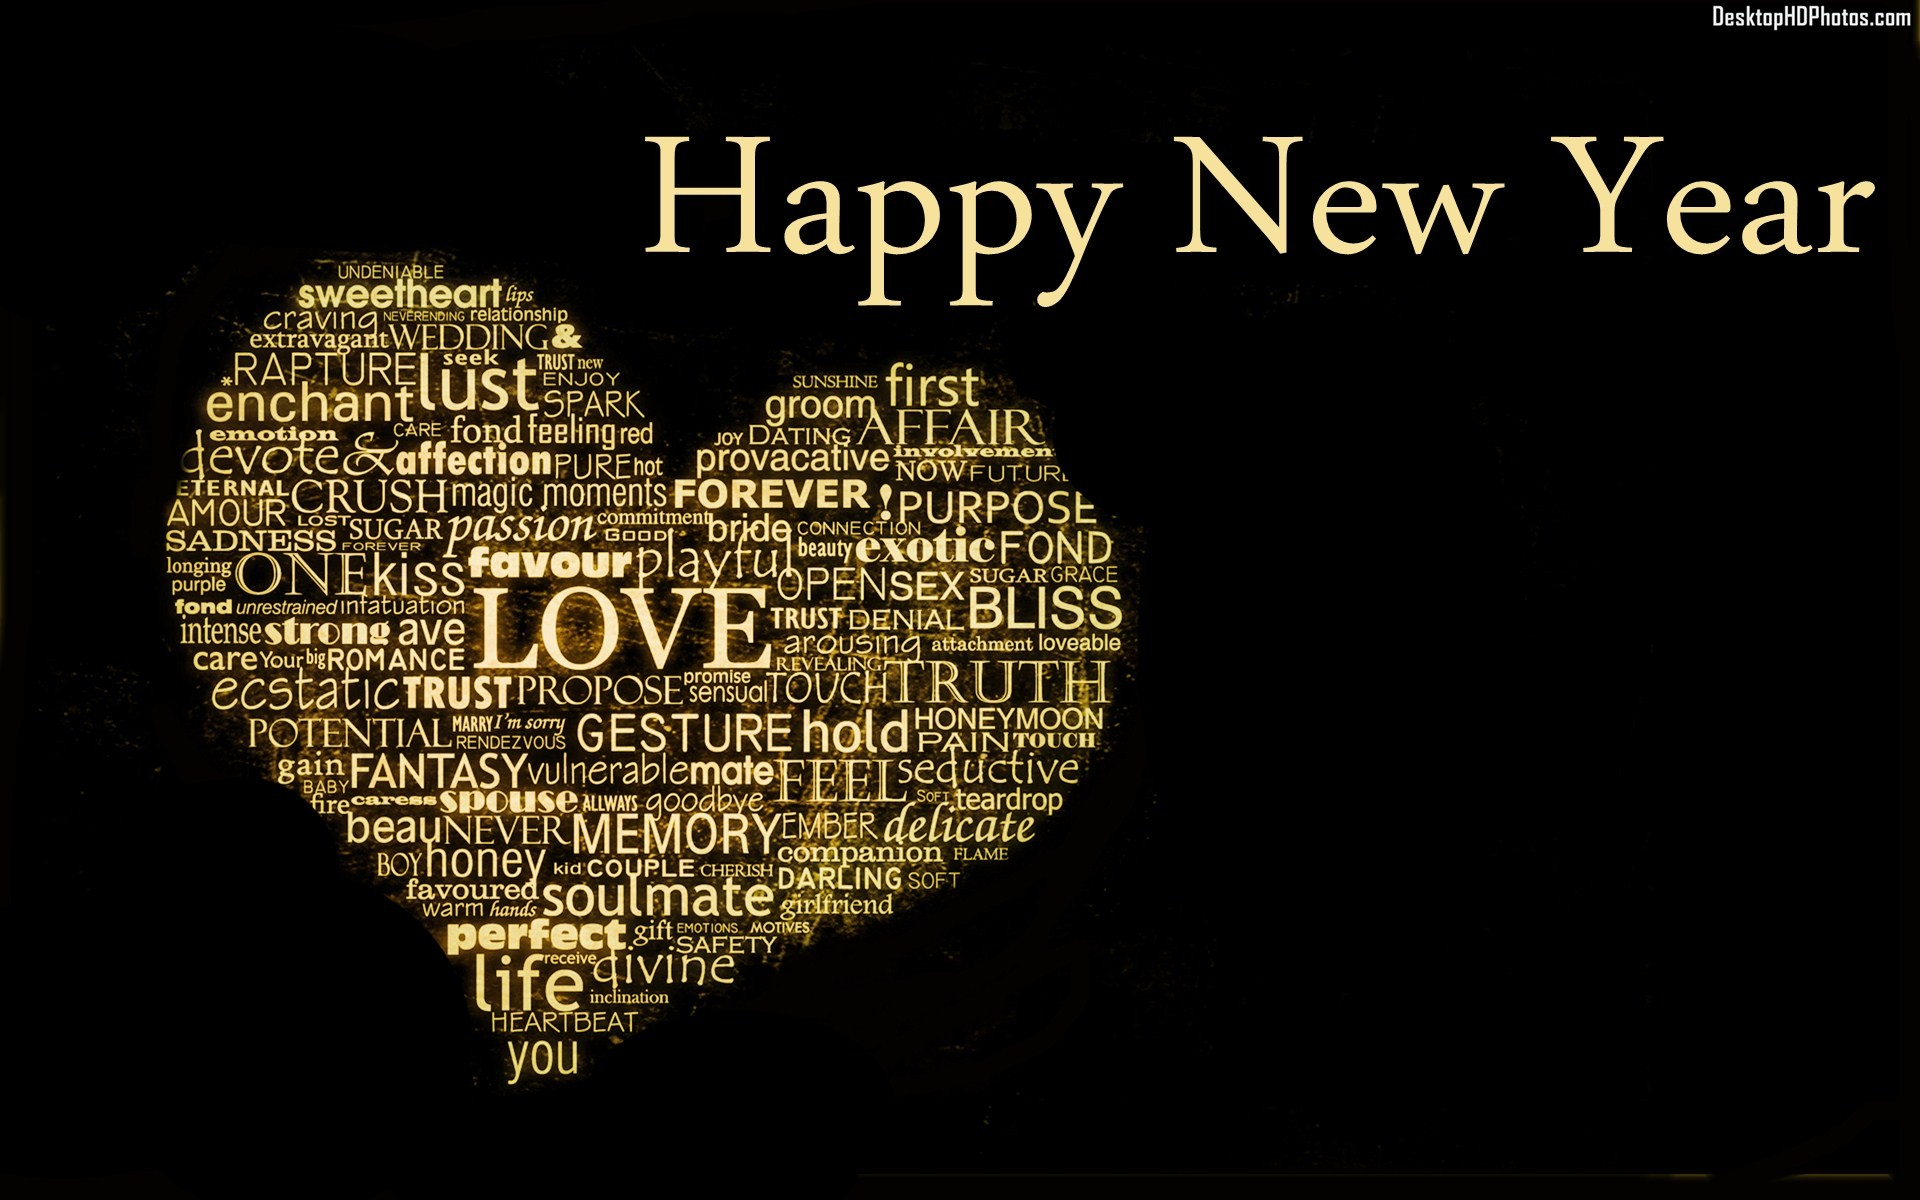 Love Wallpaper Hd New 2016 : New year 2016 HD wallpaper collections - HD wallpaper collections